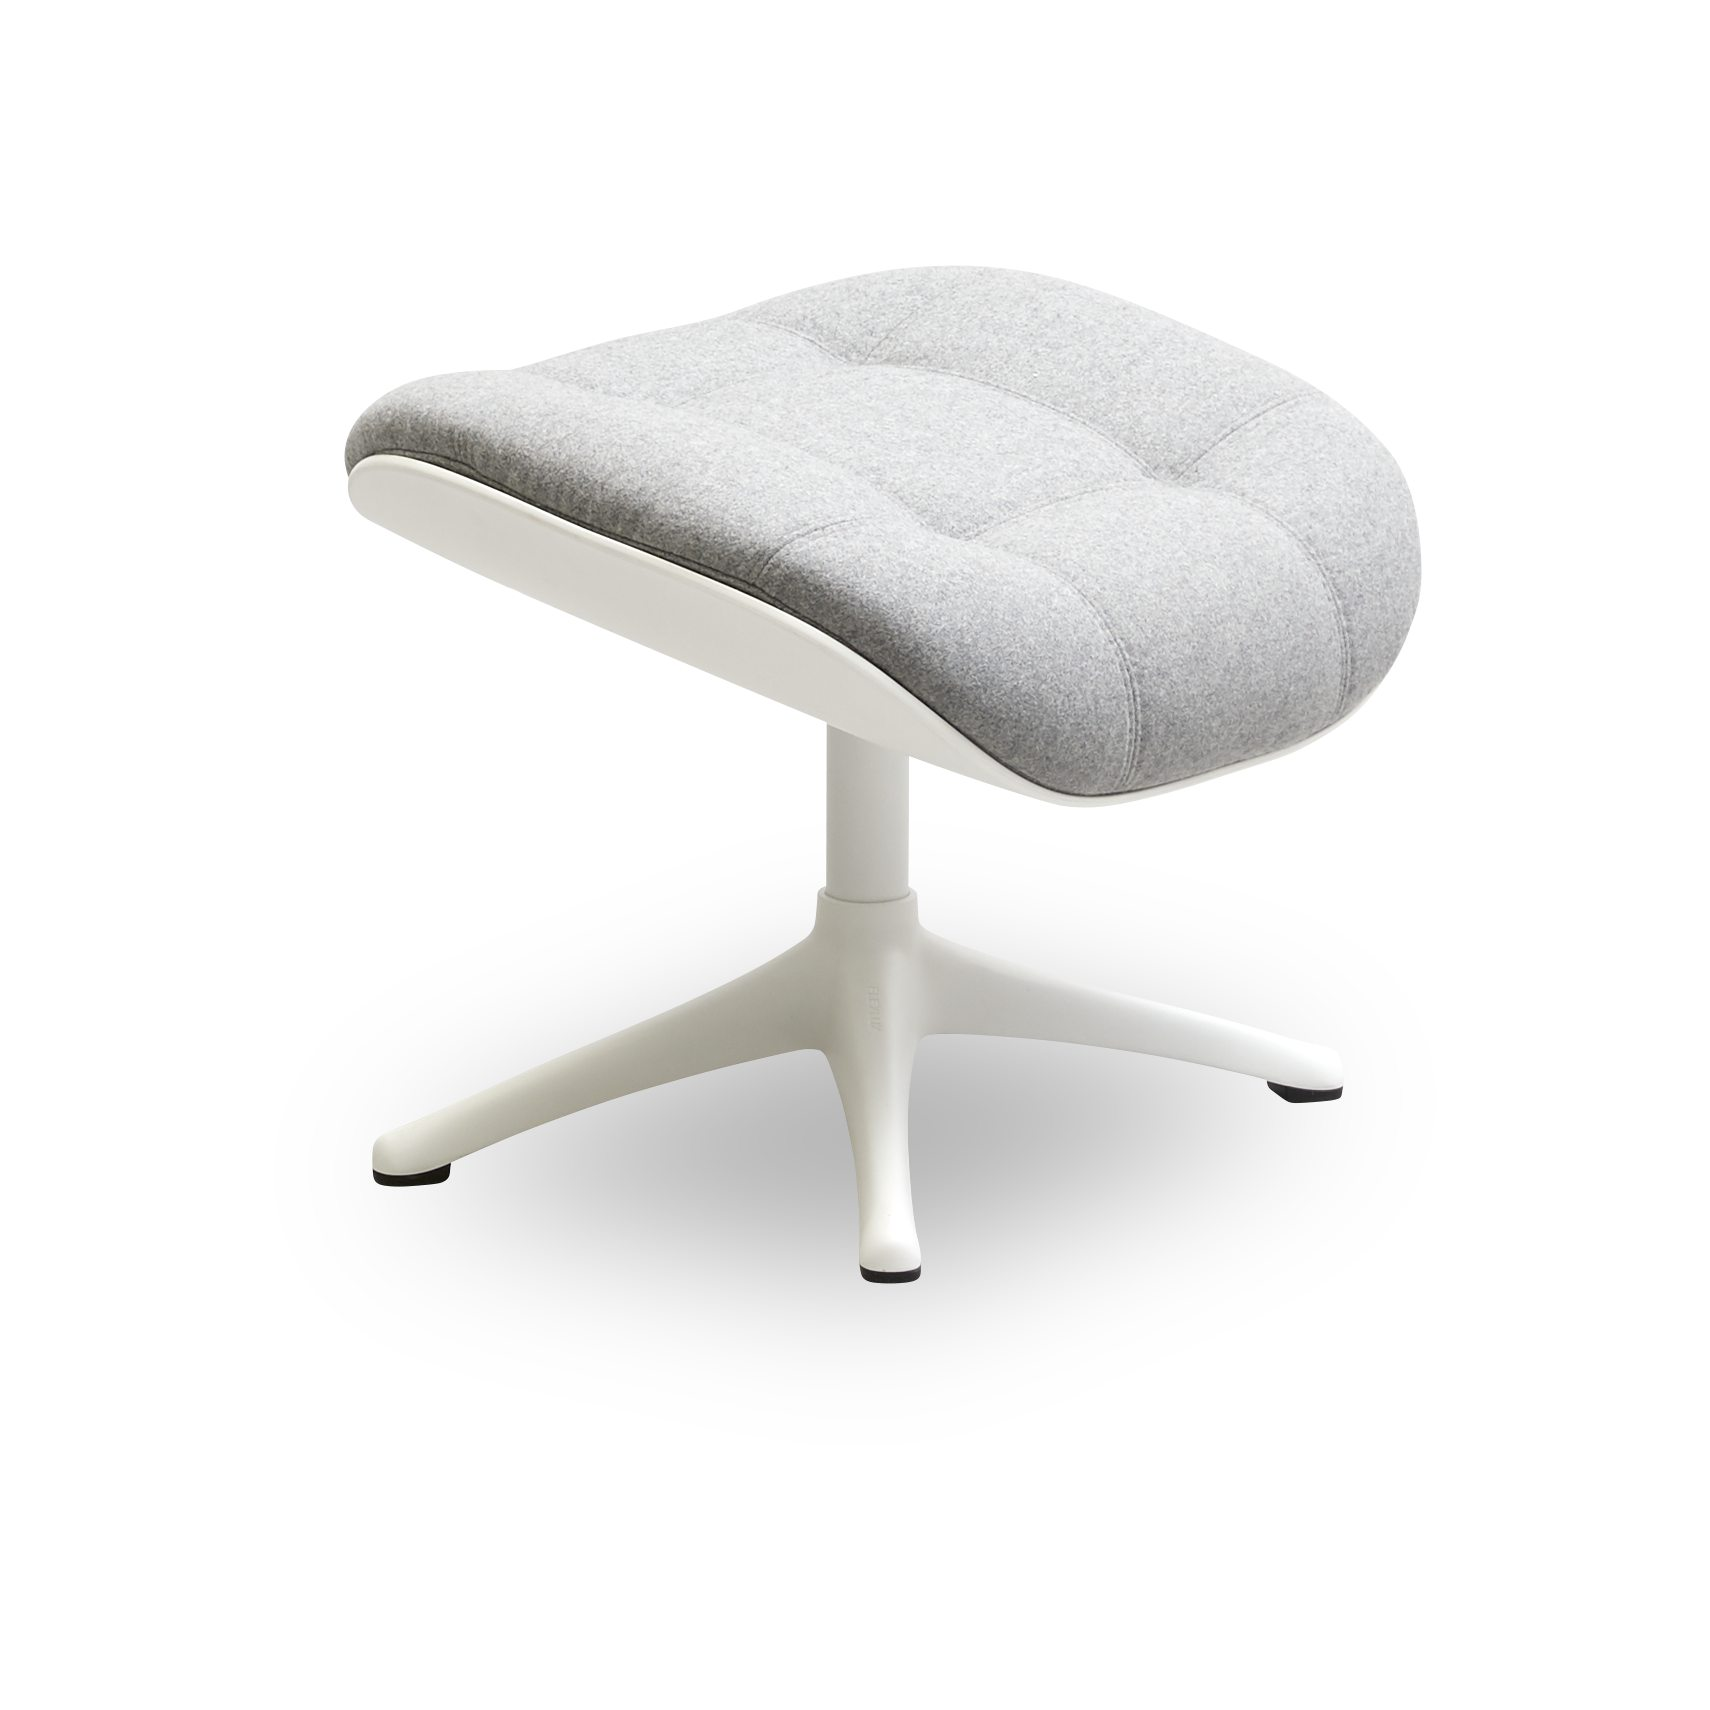 FLEXLUX® Chester Fotpall - Lana wool 1523 light grey tyg, skal i Winter White-komposit och sockel i vitlackerad aluminium